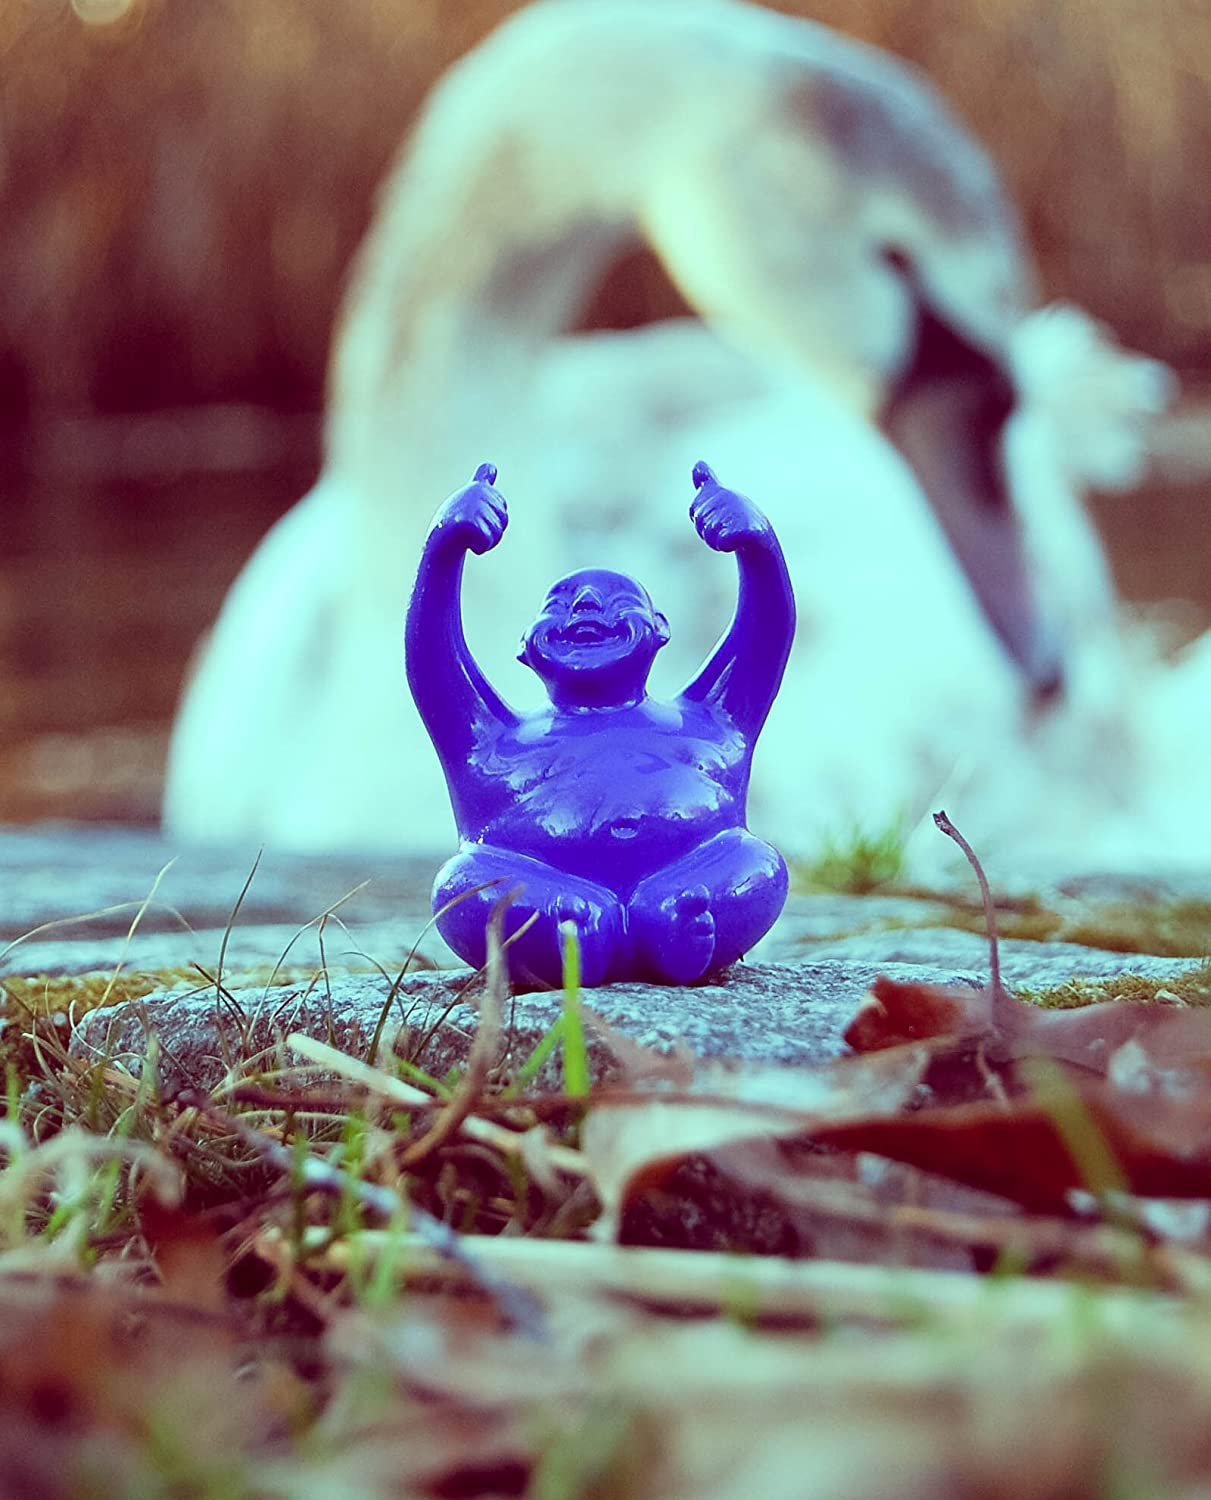 Powerful The Suburban Monk Little Syd Mini Happy Laughing Buddha Statue Figurine Peaceful Valentines Gift for Yoga and Meditation Enthusiasts Peaceful Valentine/'s Gift for Yoga and Meditation Enthusiasts